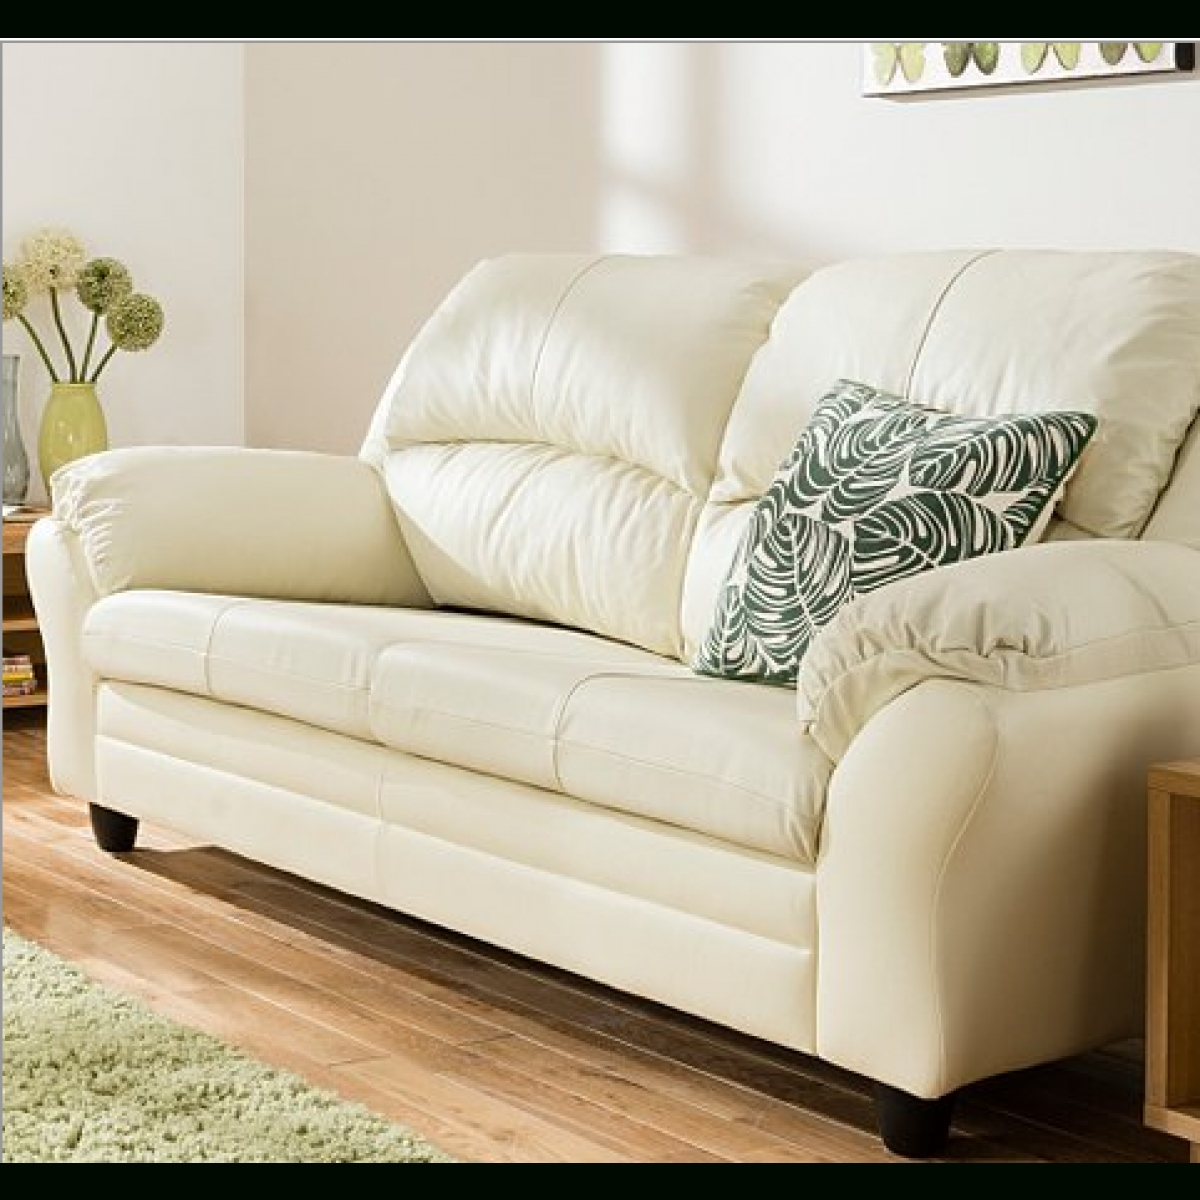 Featured Image of Ivory Leather Sofas